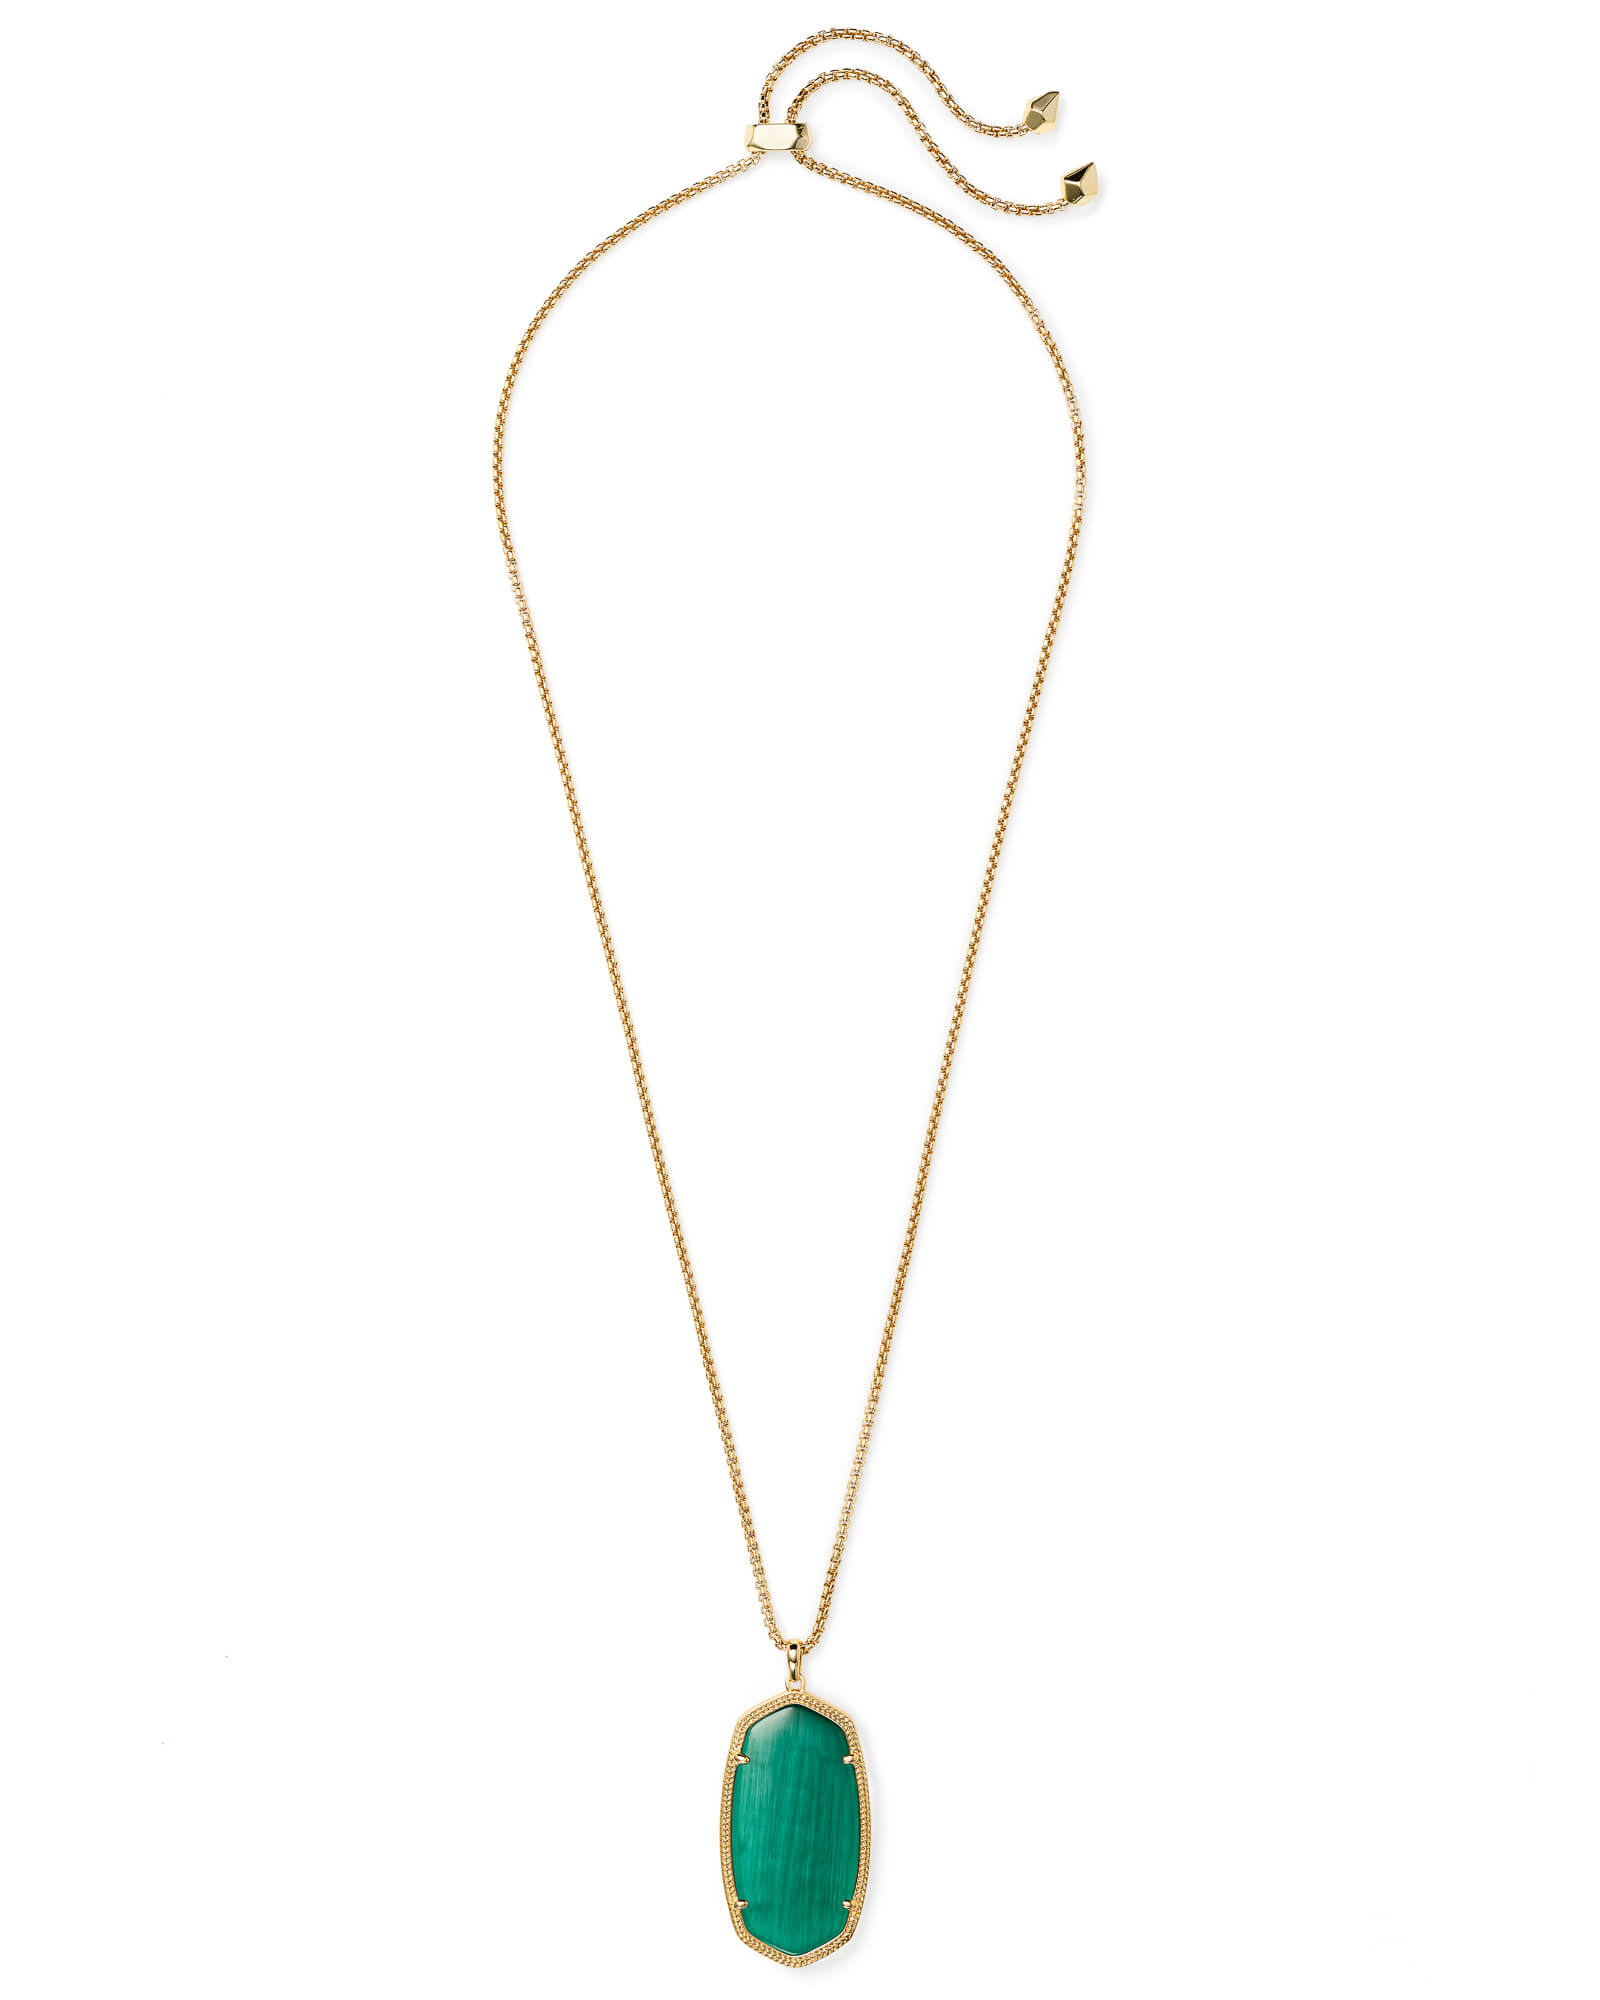 Reid Gold Long Pendant Necklace in Emerald Cats Eye